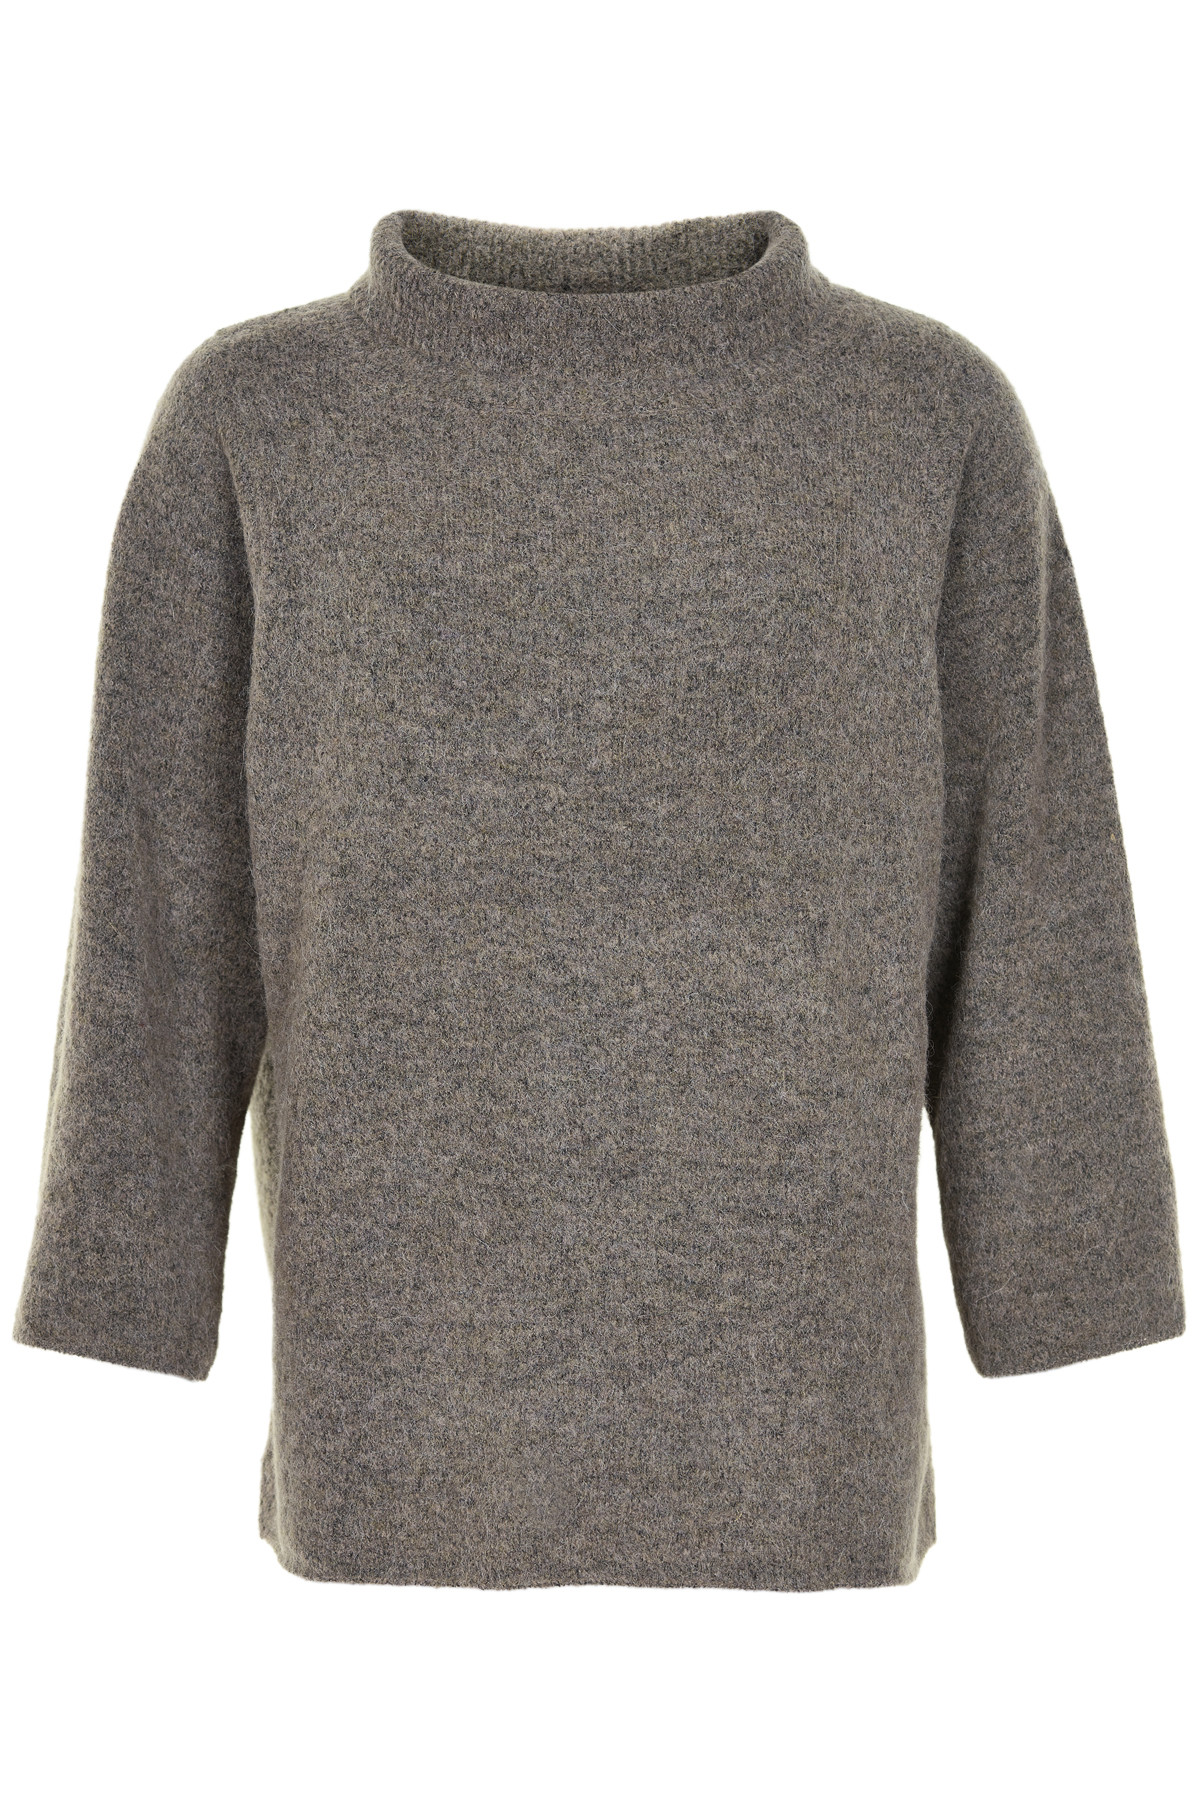 Image of   AND LESS ALELENORE PULLOVER 5519204 W (Walnut, M)